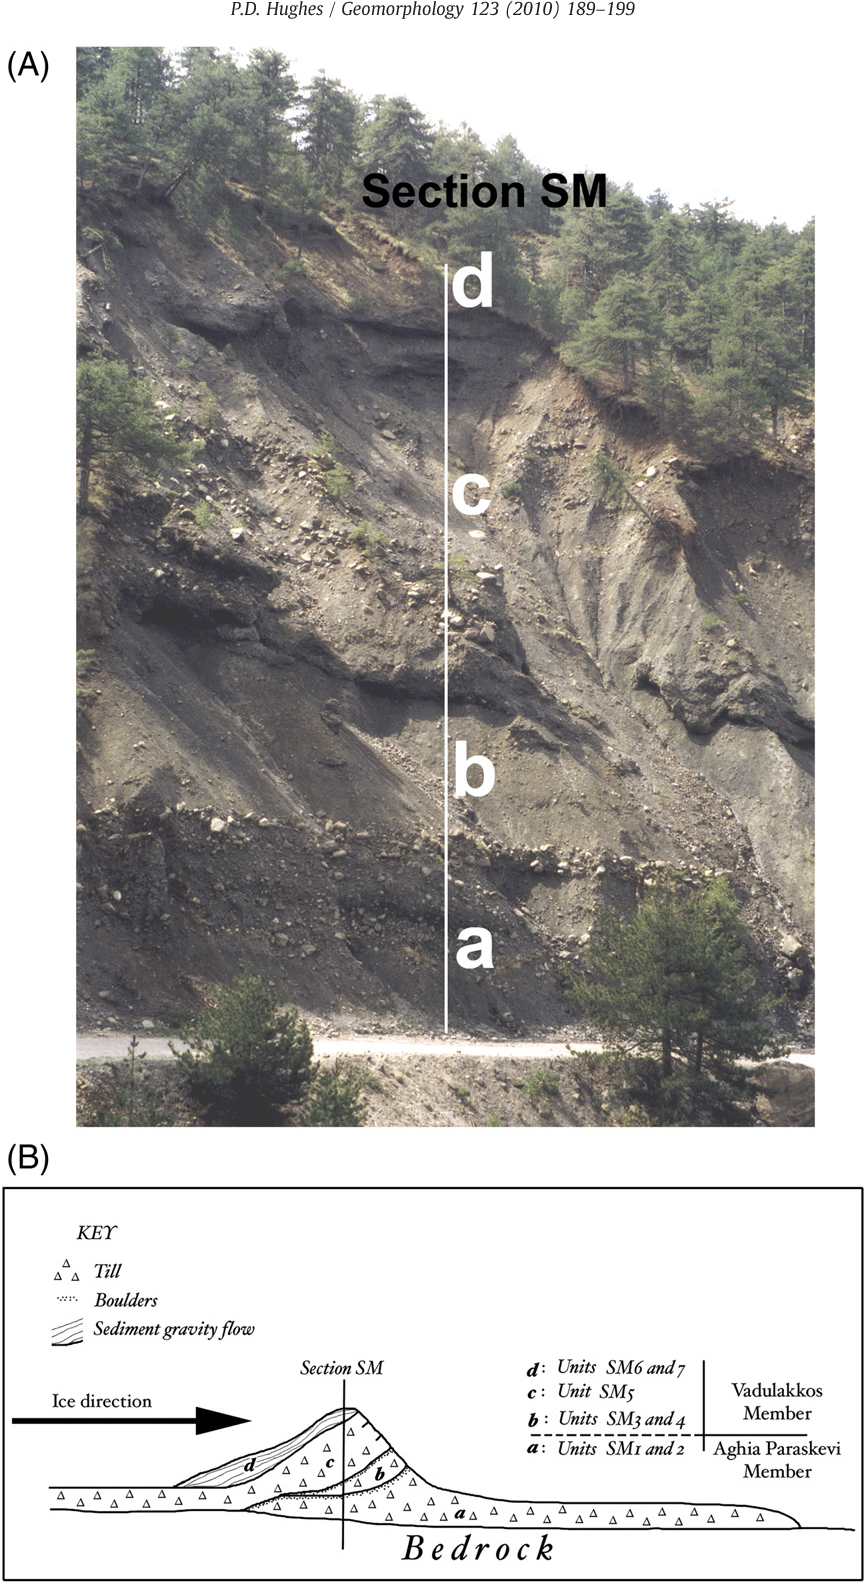 Geomorphology and Quaternary stratigraphy: the roles of